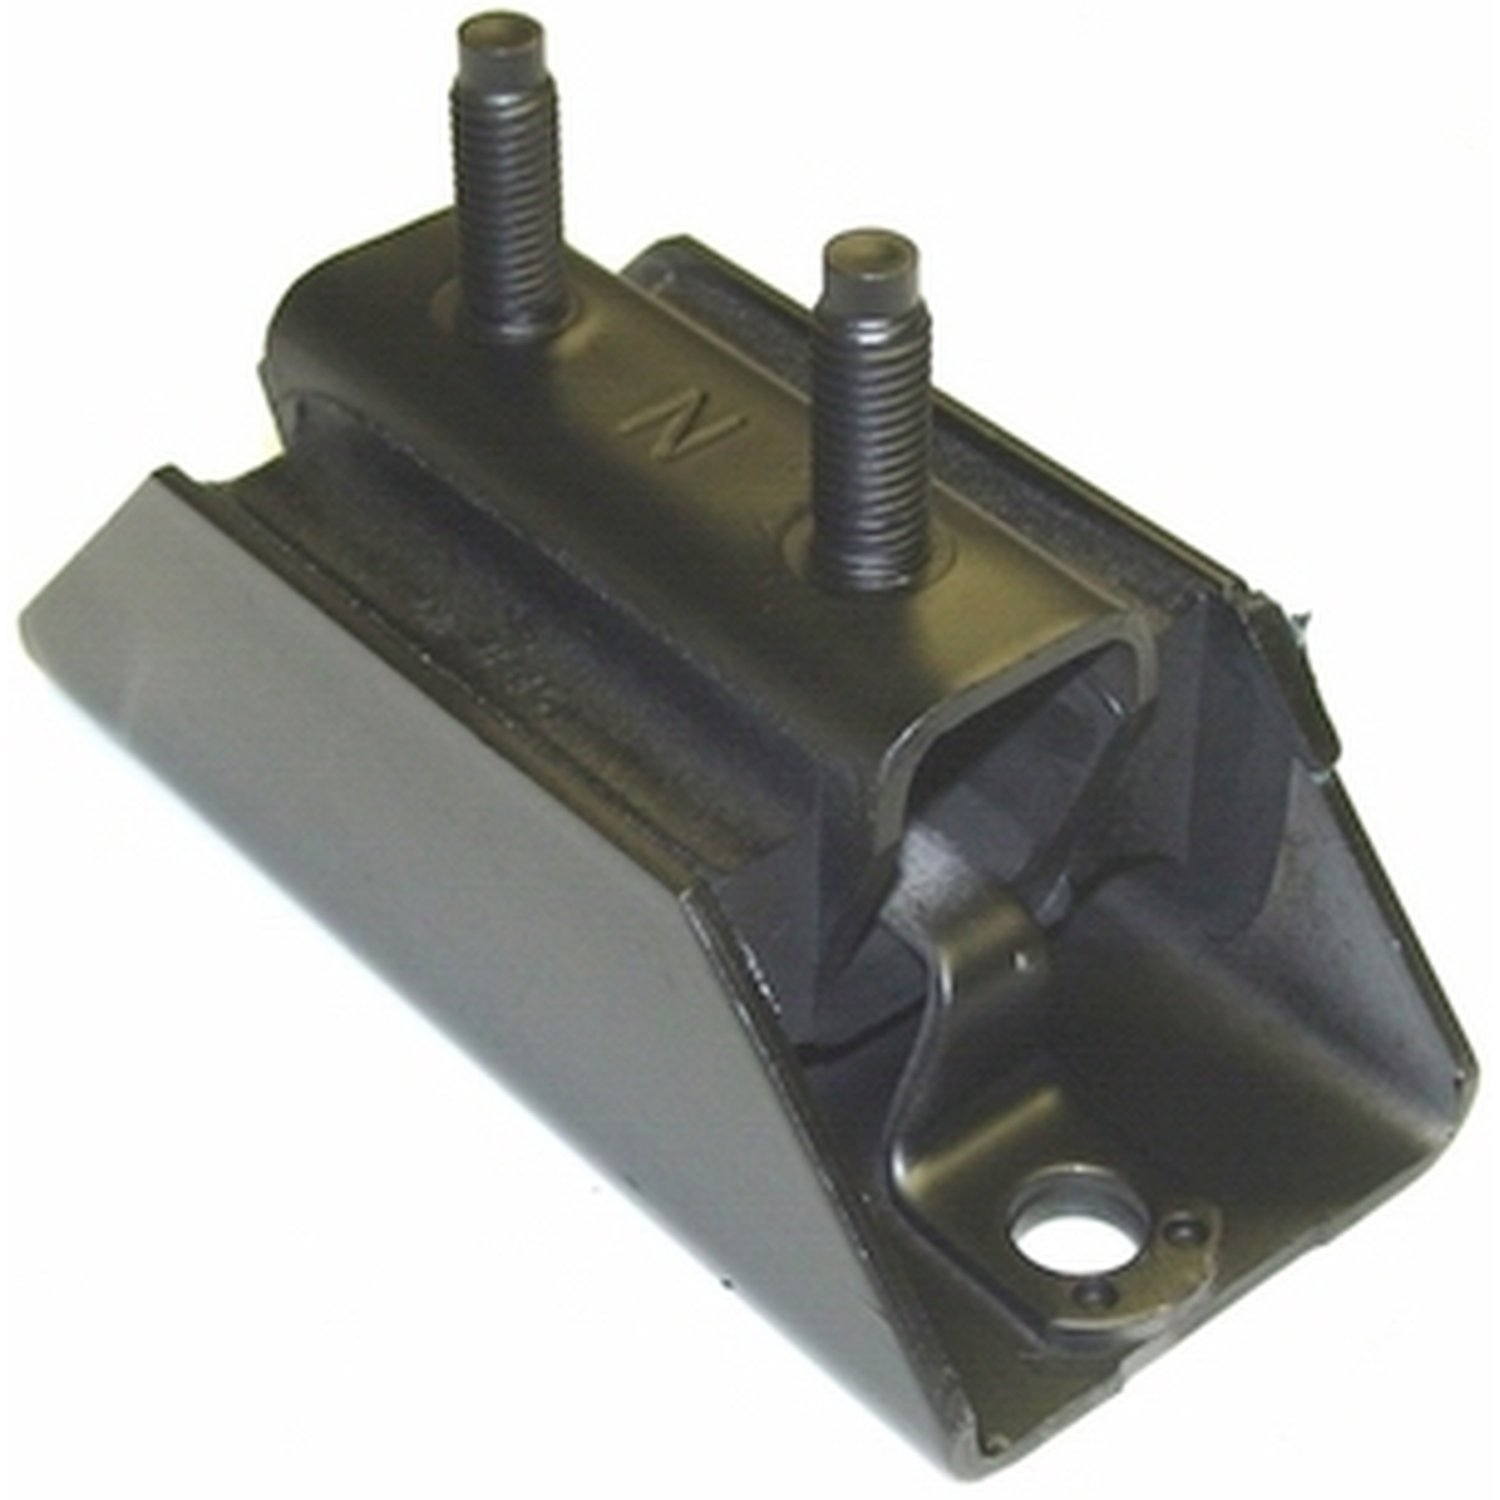 hight resolution of 1995 ford f 350 automatic transmission mount am 2884